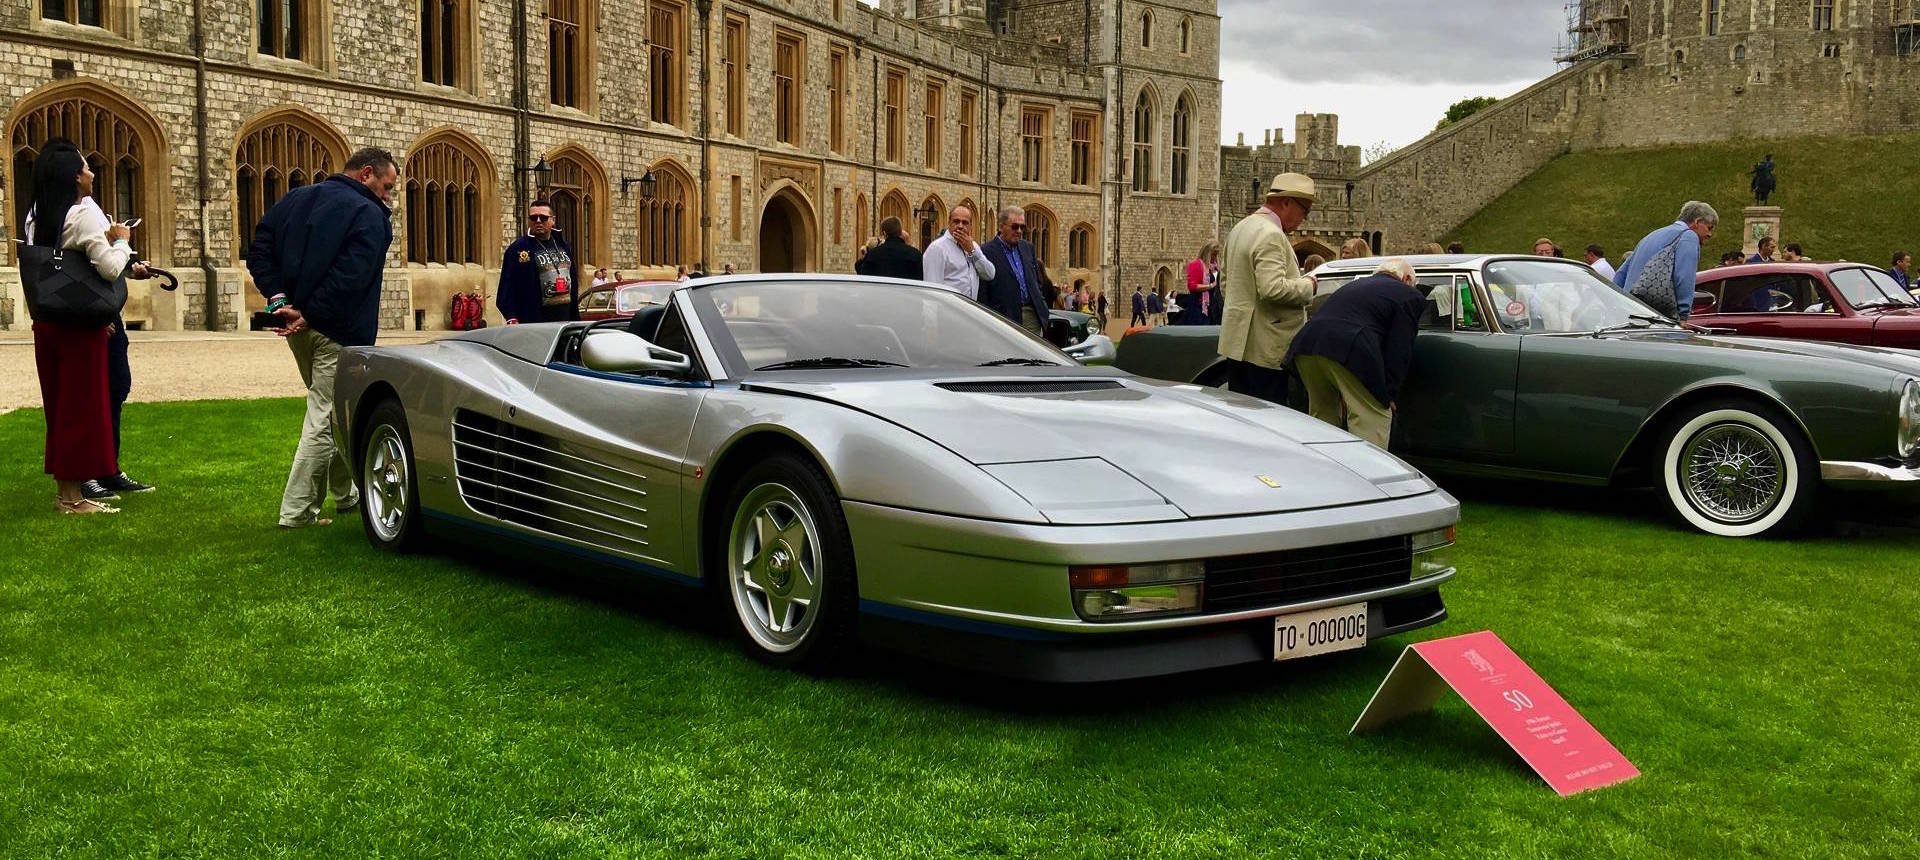 Meet The World's Only Ferrari Testarossa Spider